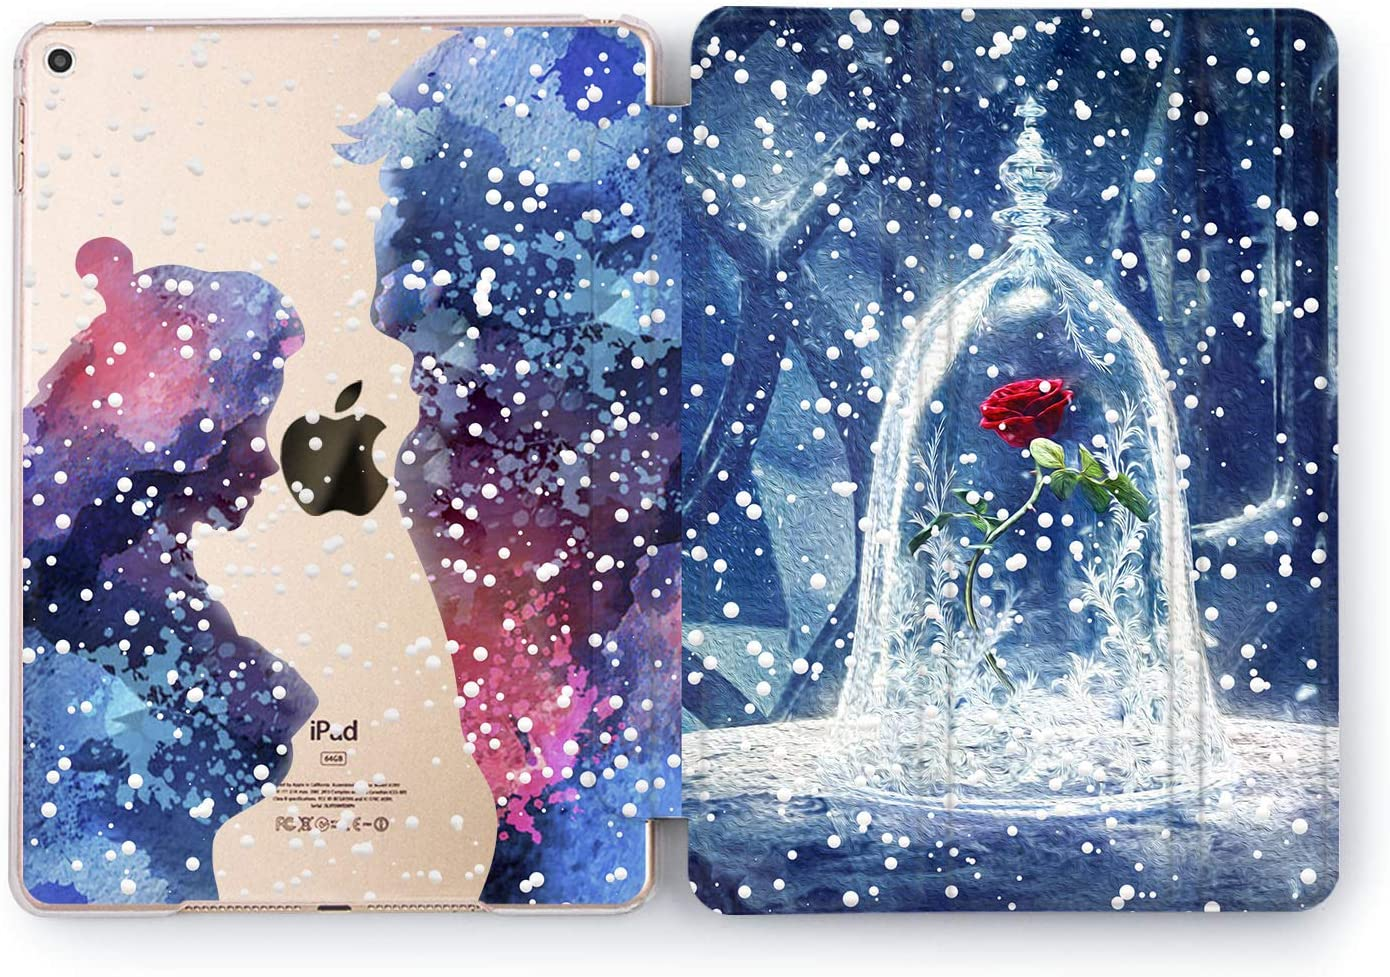 Wonder Wild Case Compatible with Apple iPad Beauty and The Beast Cute Hard 5th 6th Generation Mini 1 2 3 4 Air 2 Tablet Pro 10.5 12.9 11 10.2 9.7 inch Cartoon Cover Princess Print Girly Rose in Glass